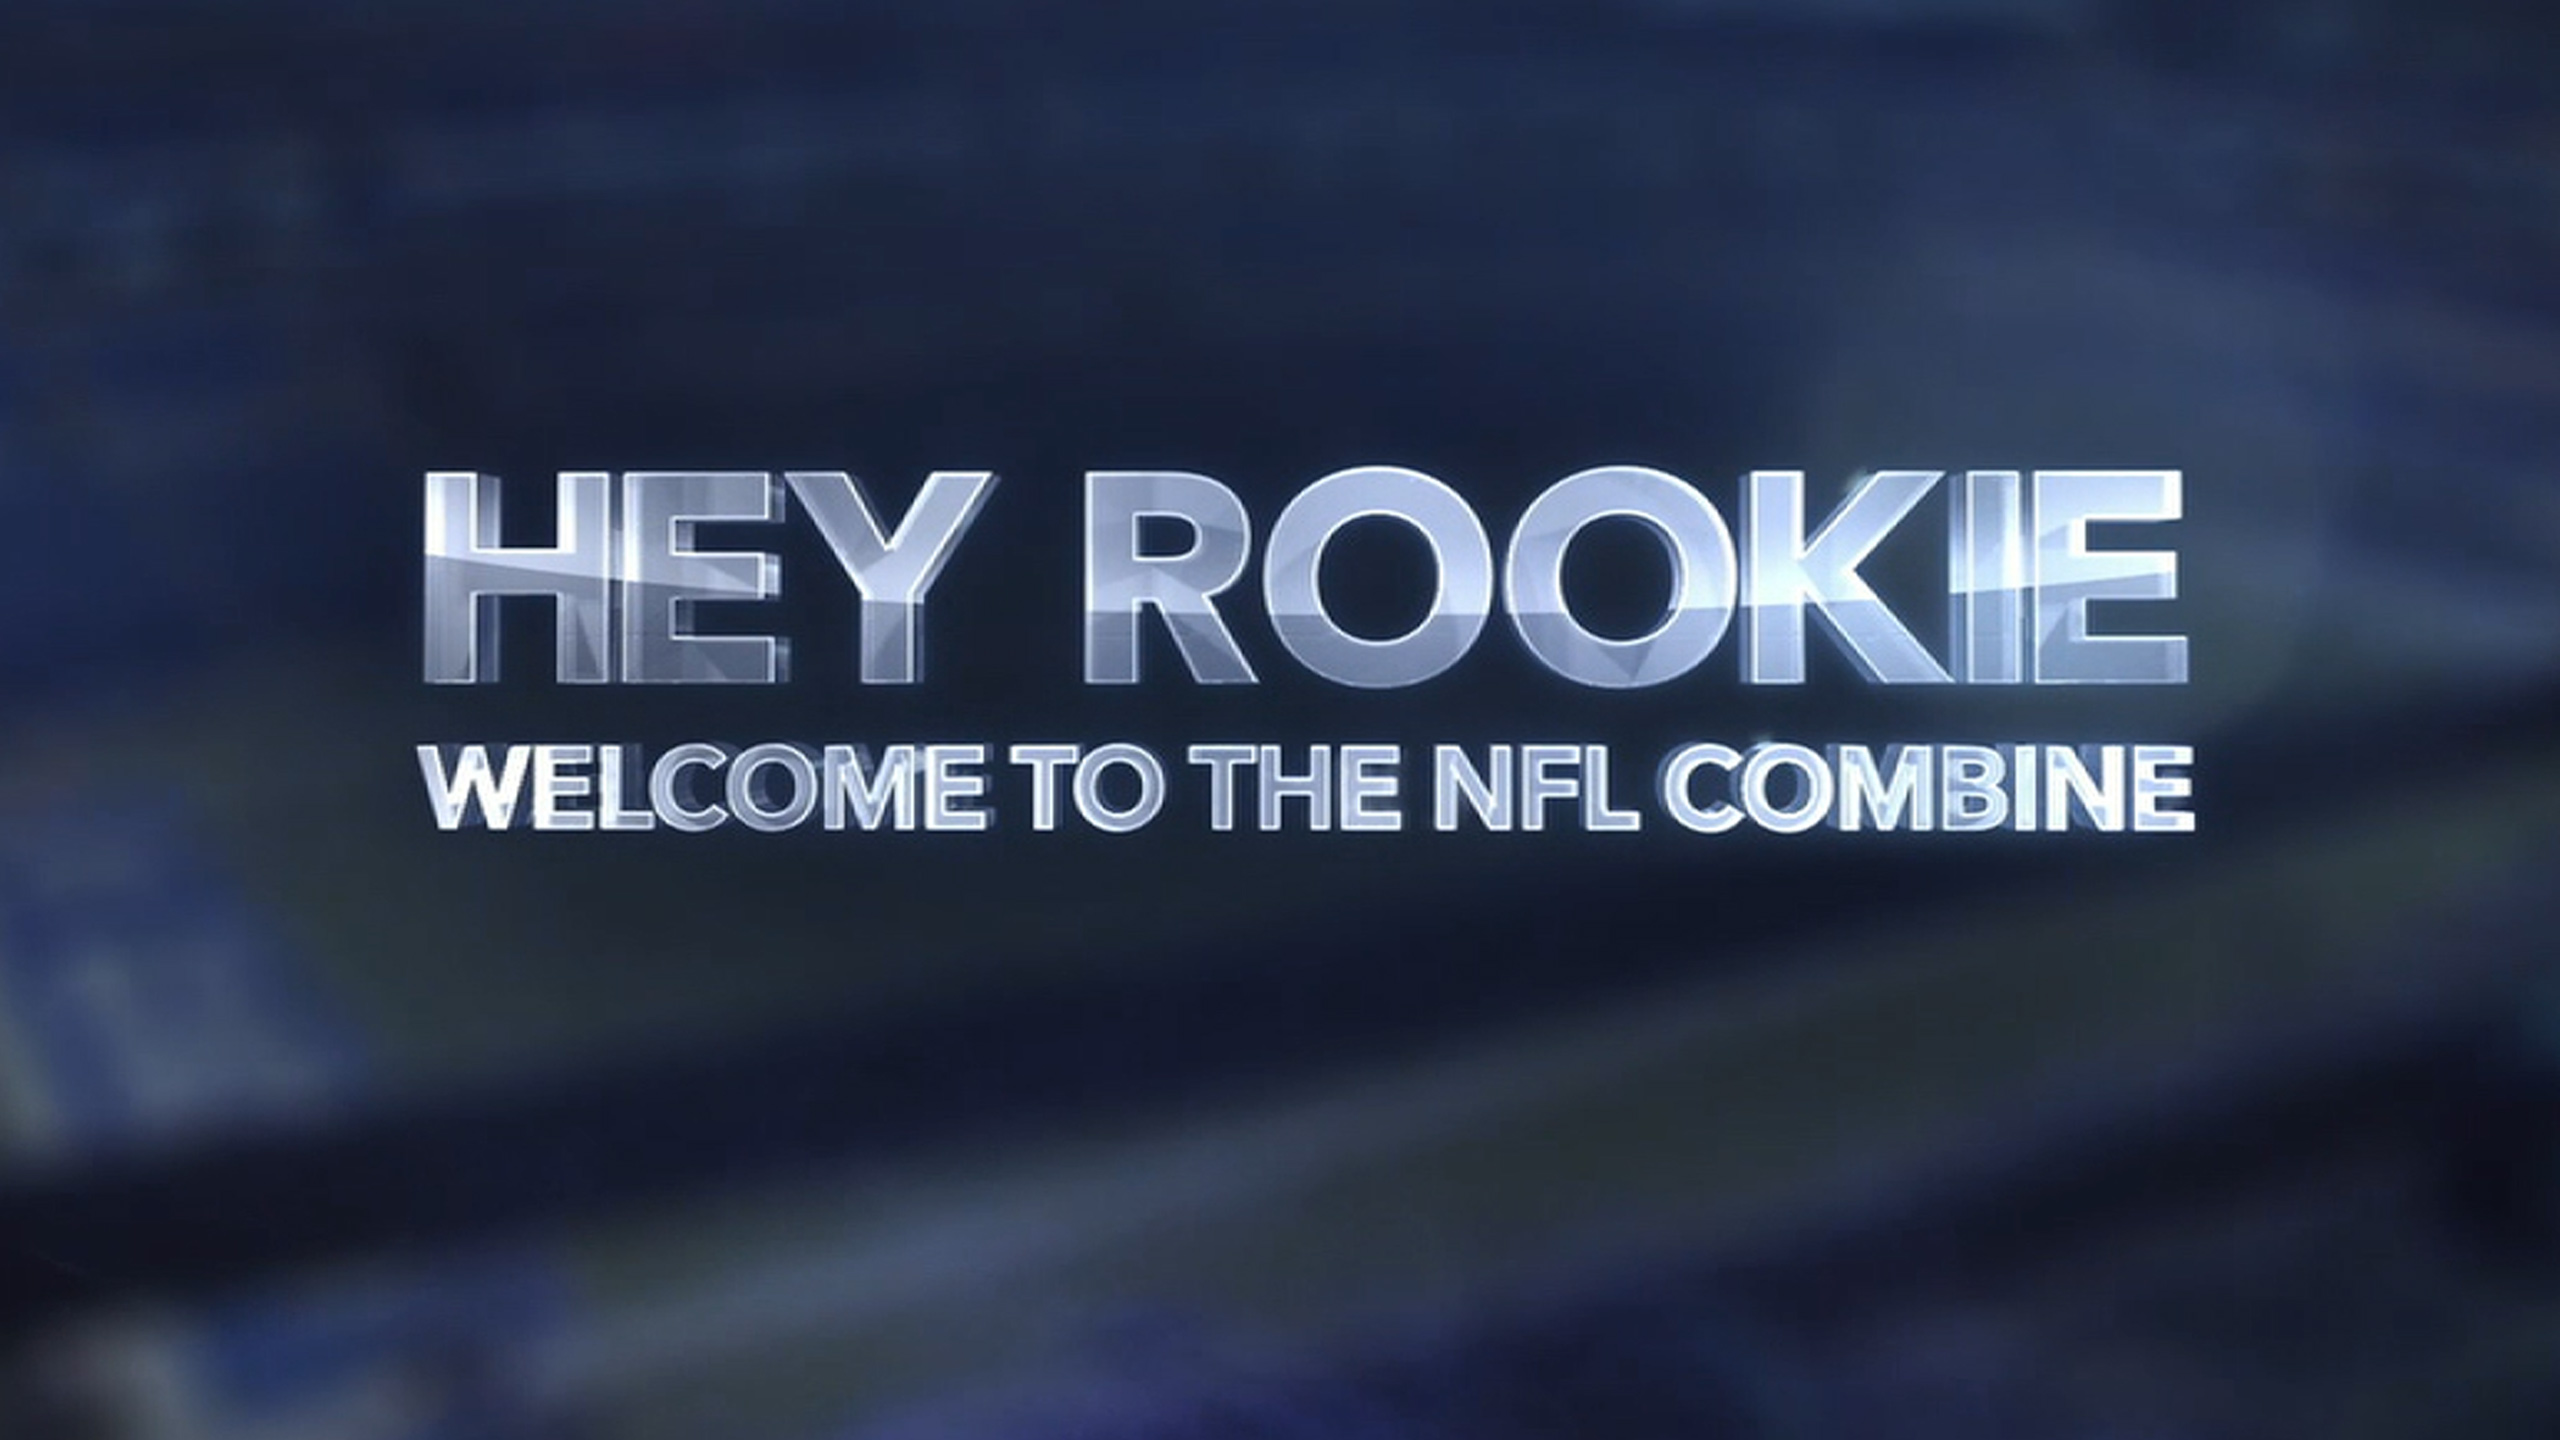 Hey Rookie: Welcome to the NFL Combine